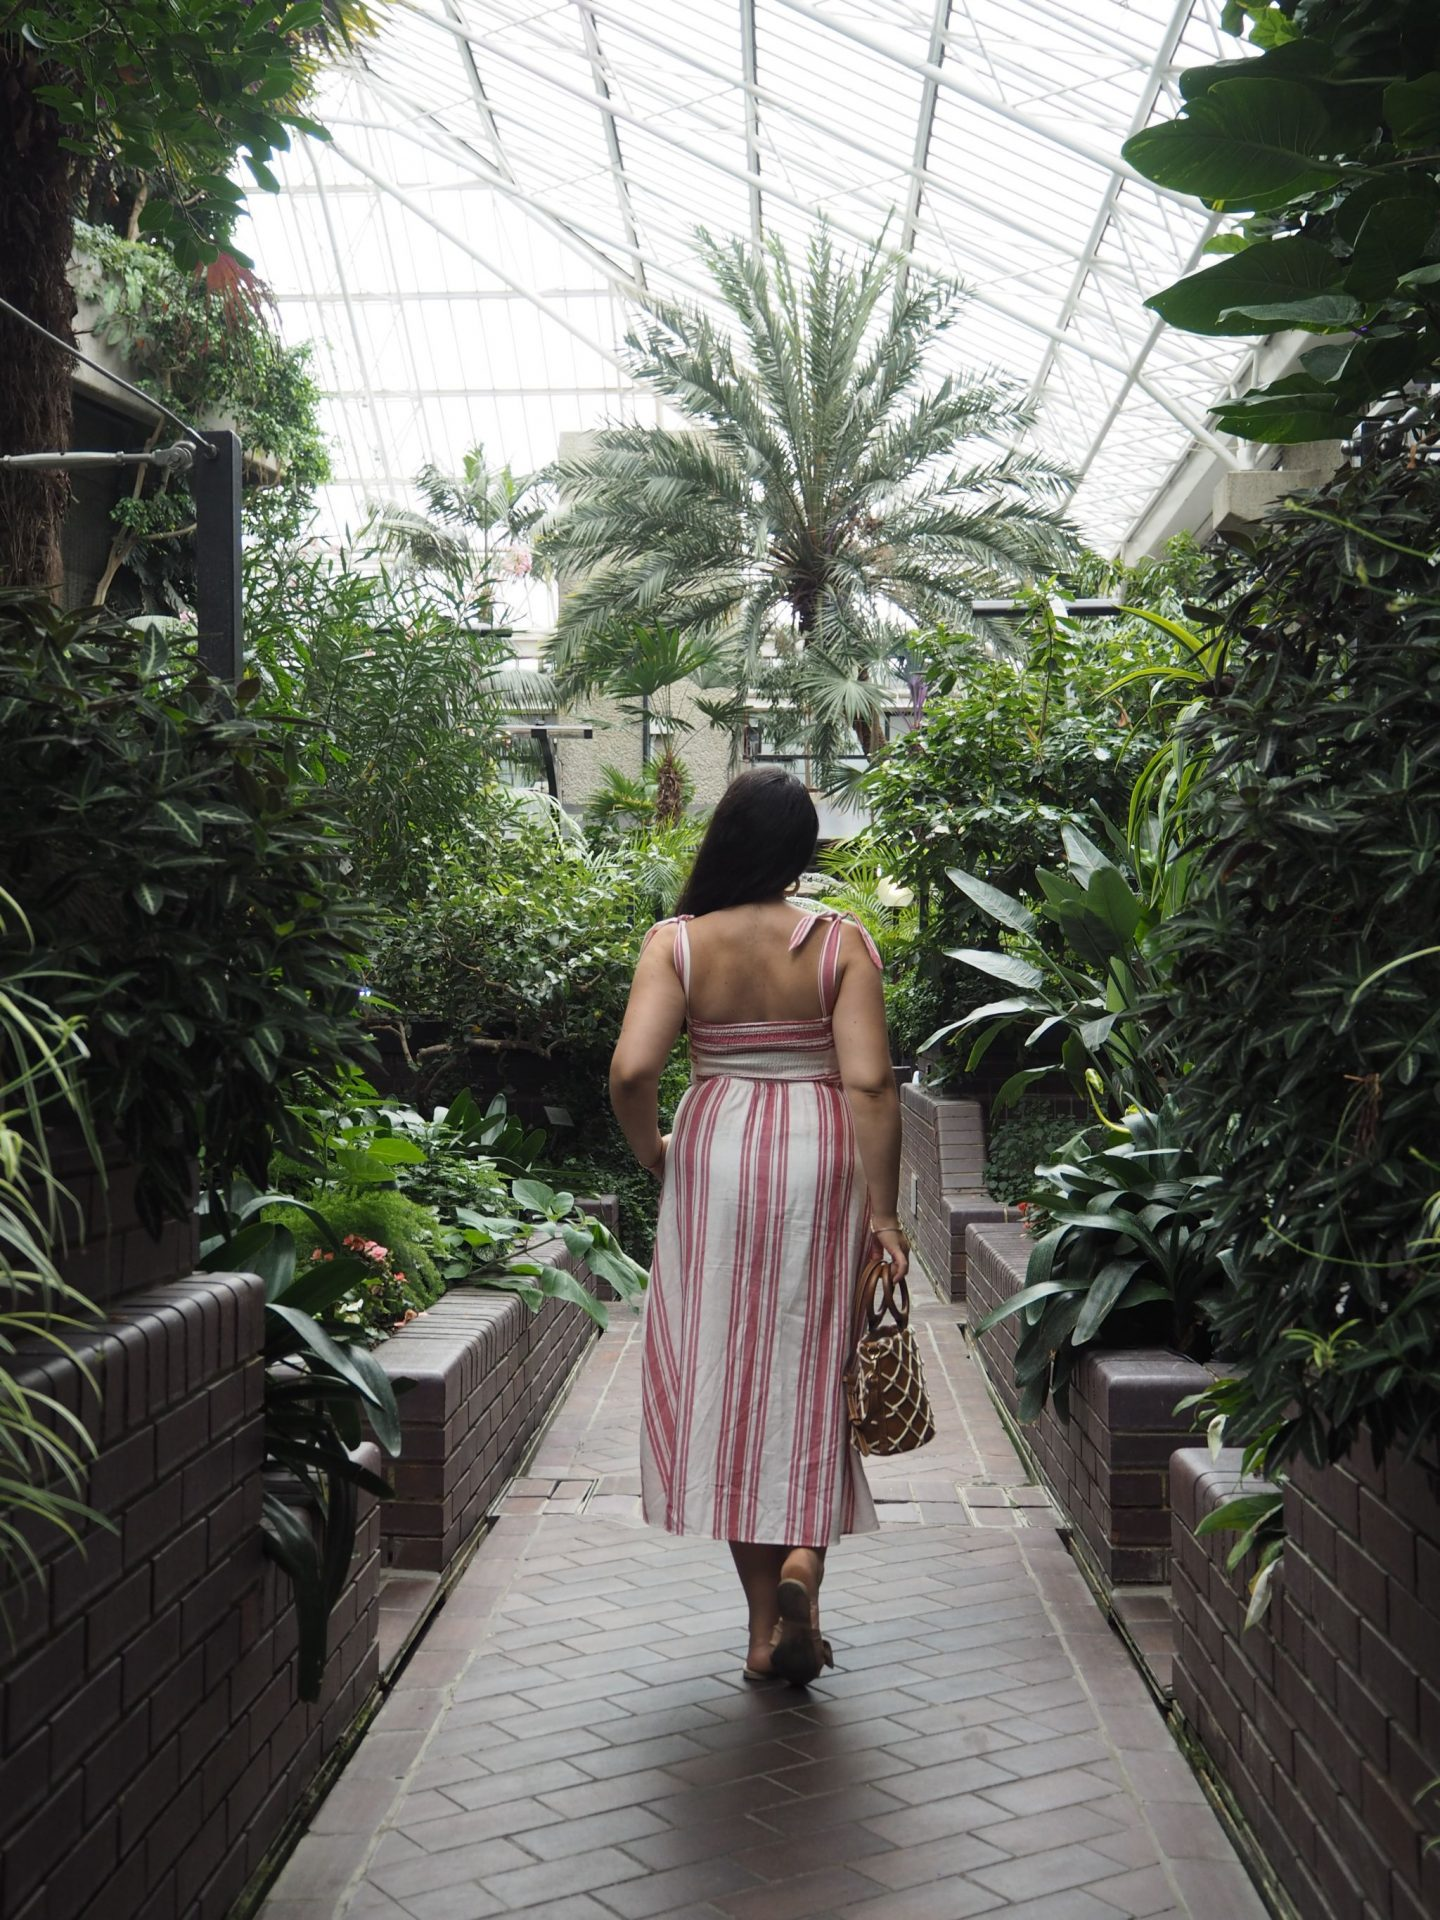 5 Reasons To Visit The Barbican Conservatory